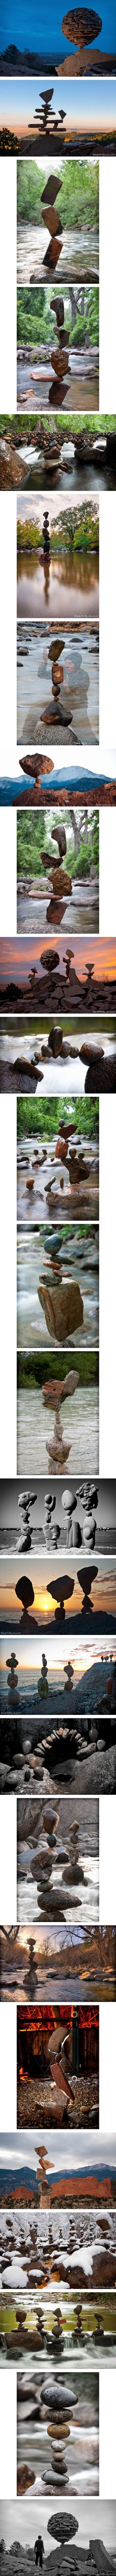 The Art of Rock Balancing by Michael Grab- Impressive